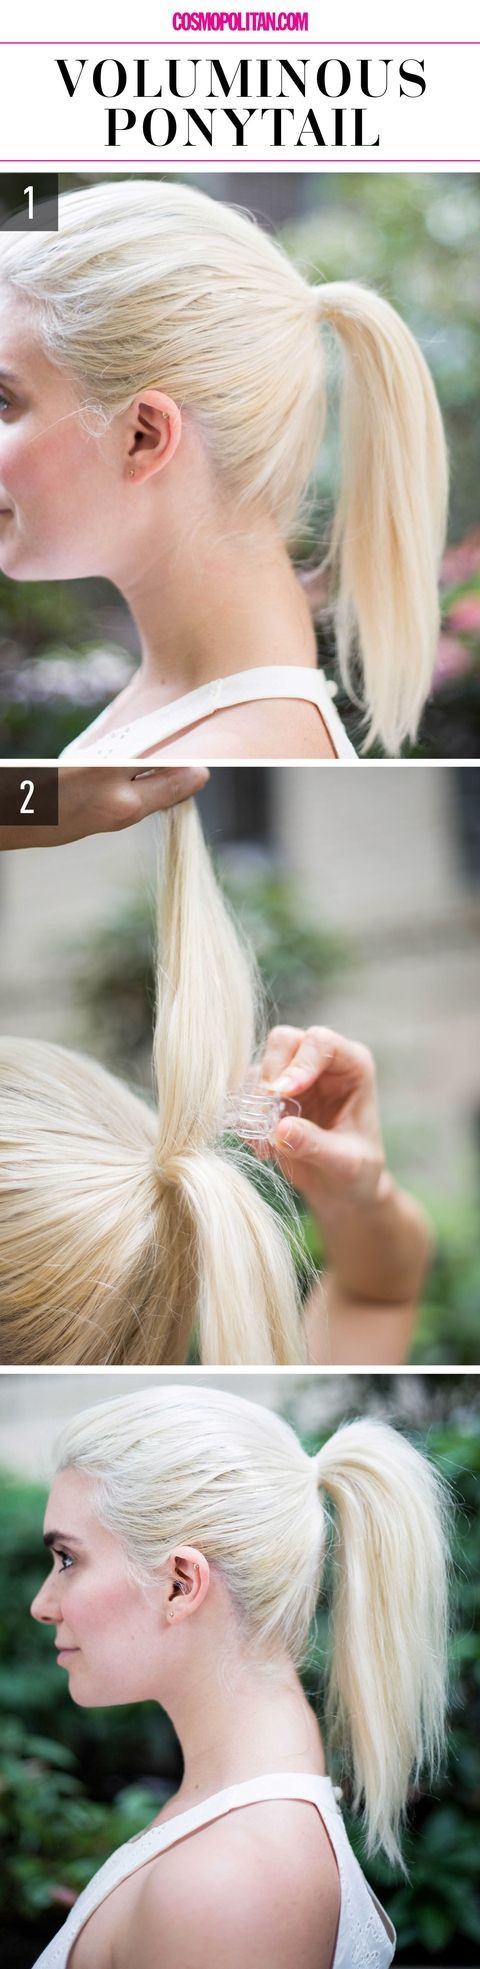 supereasy hairstyles for lazy girls who canut even voluminous